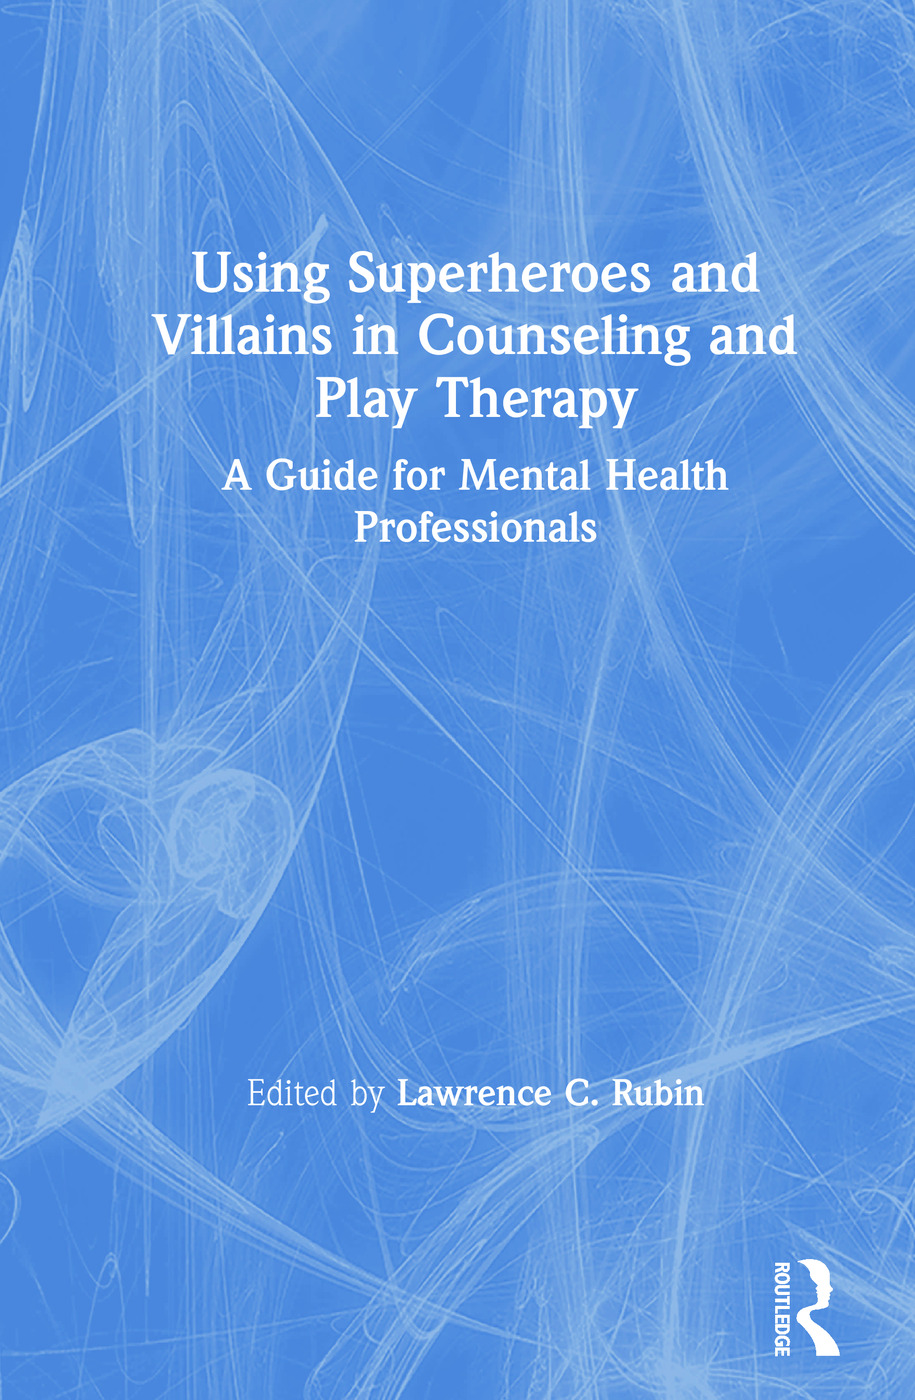 Using Superheroes and Villains in Counseling and Play Therapy: A Guide for Mental Health Professionals book cover